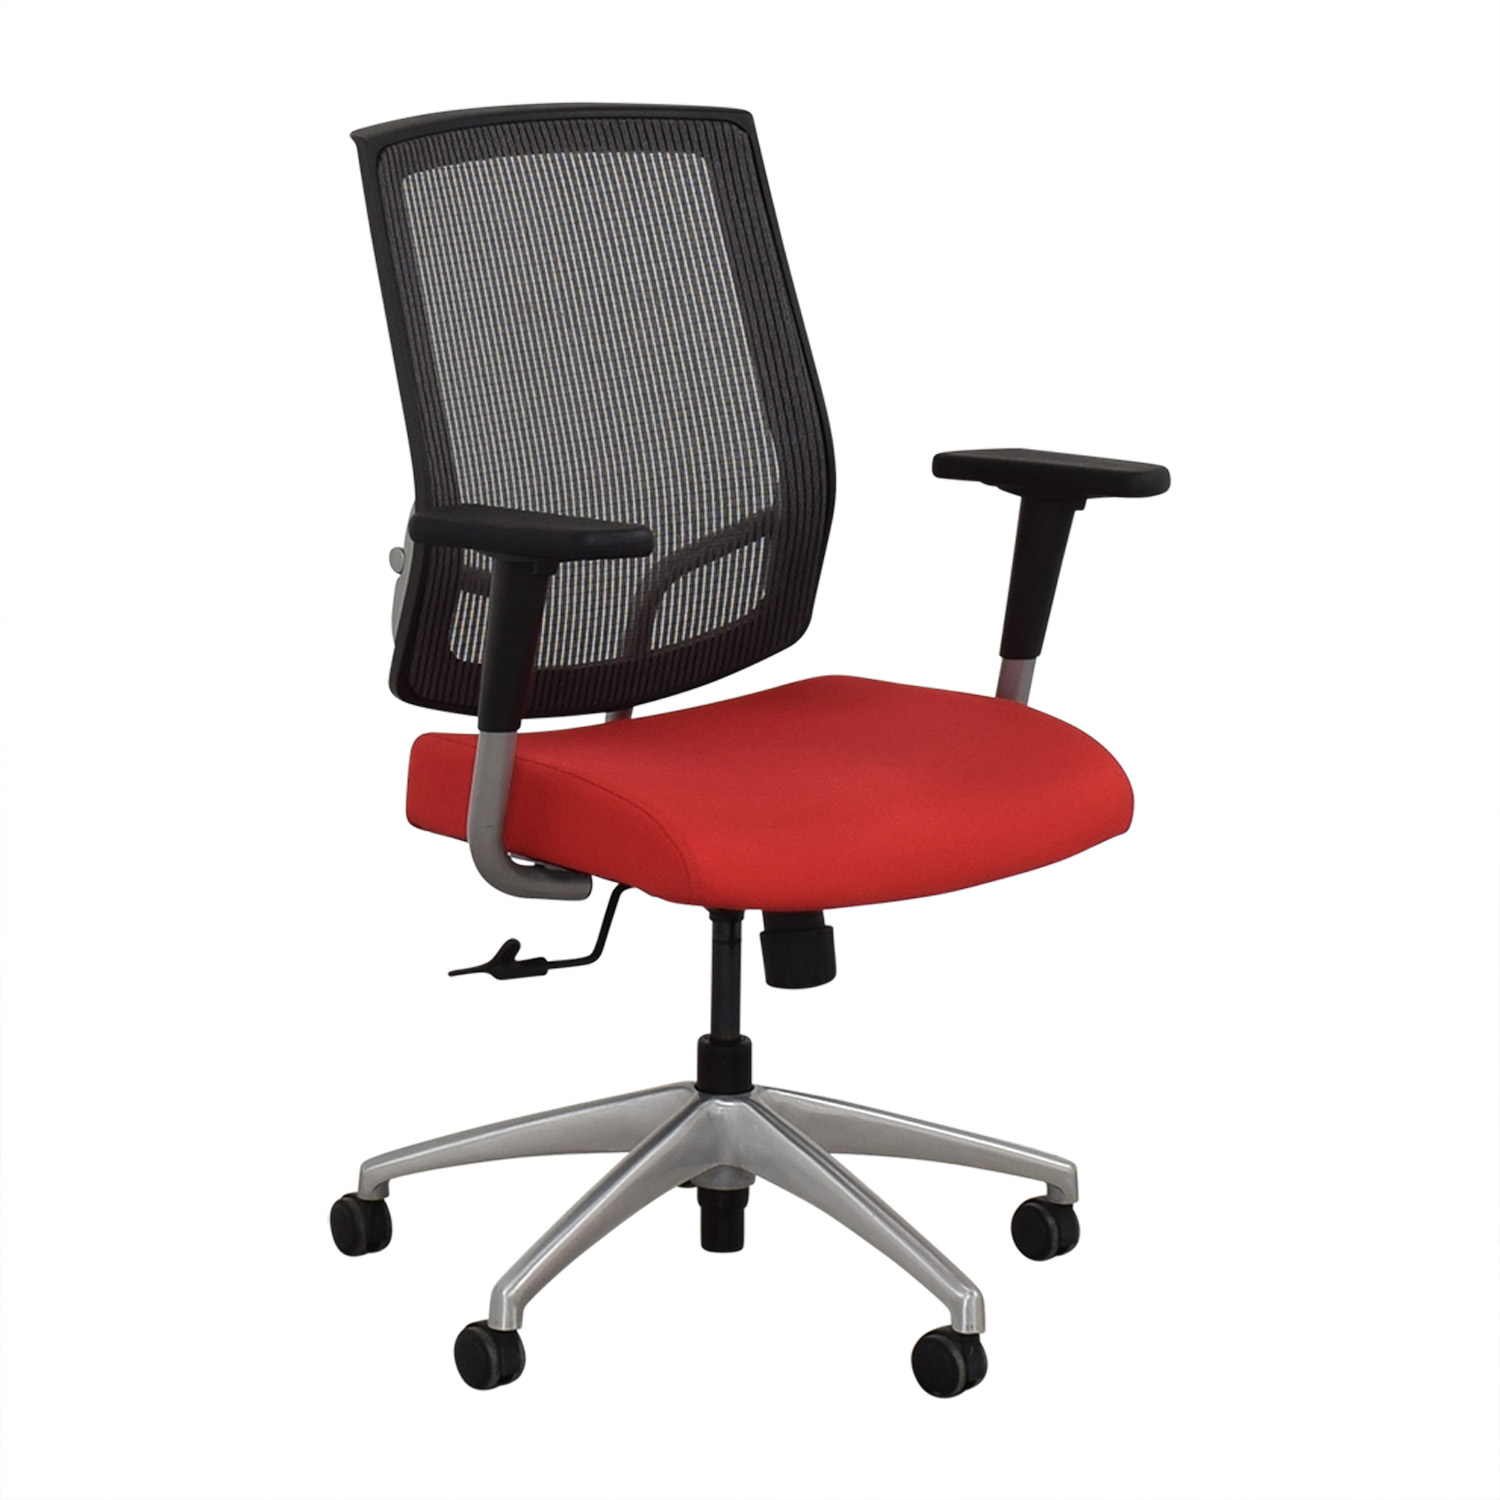 buy SitOnIt SitOnIt Focus High Back Office Chair online